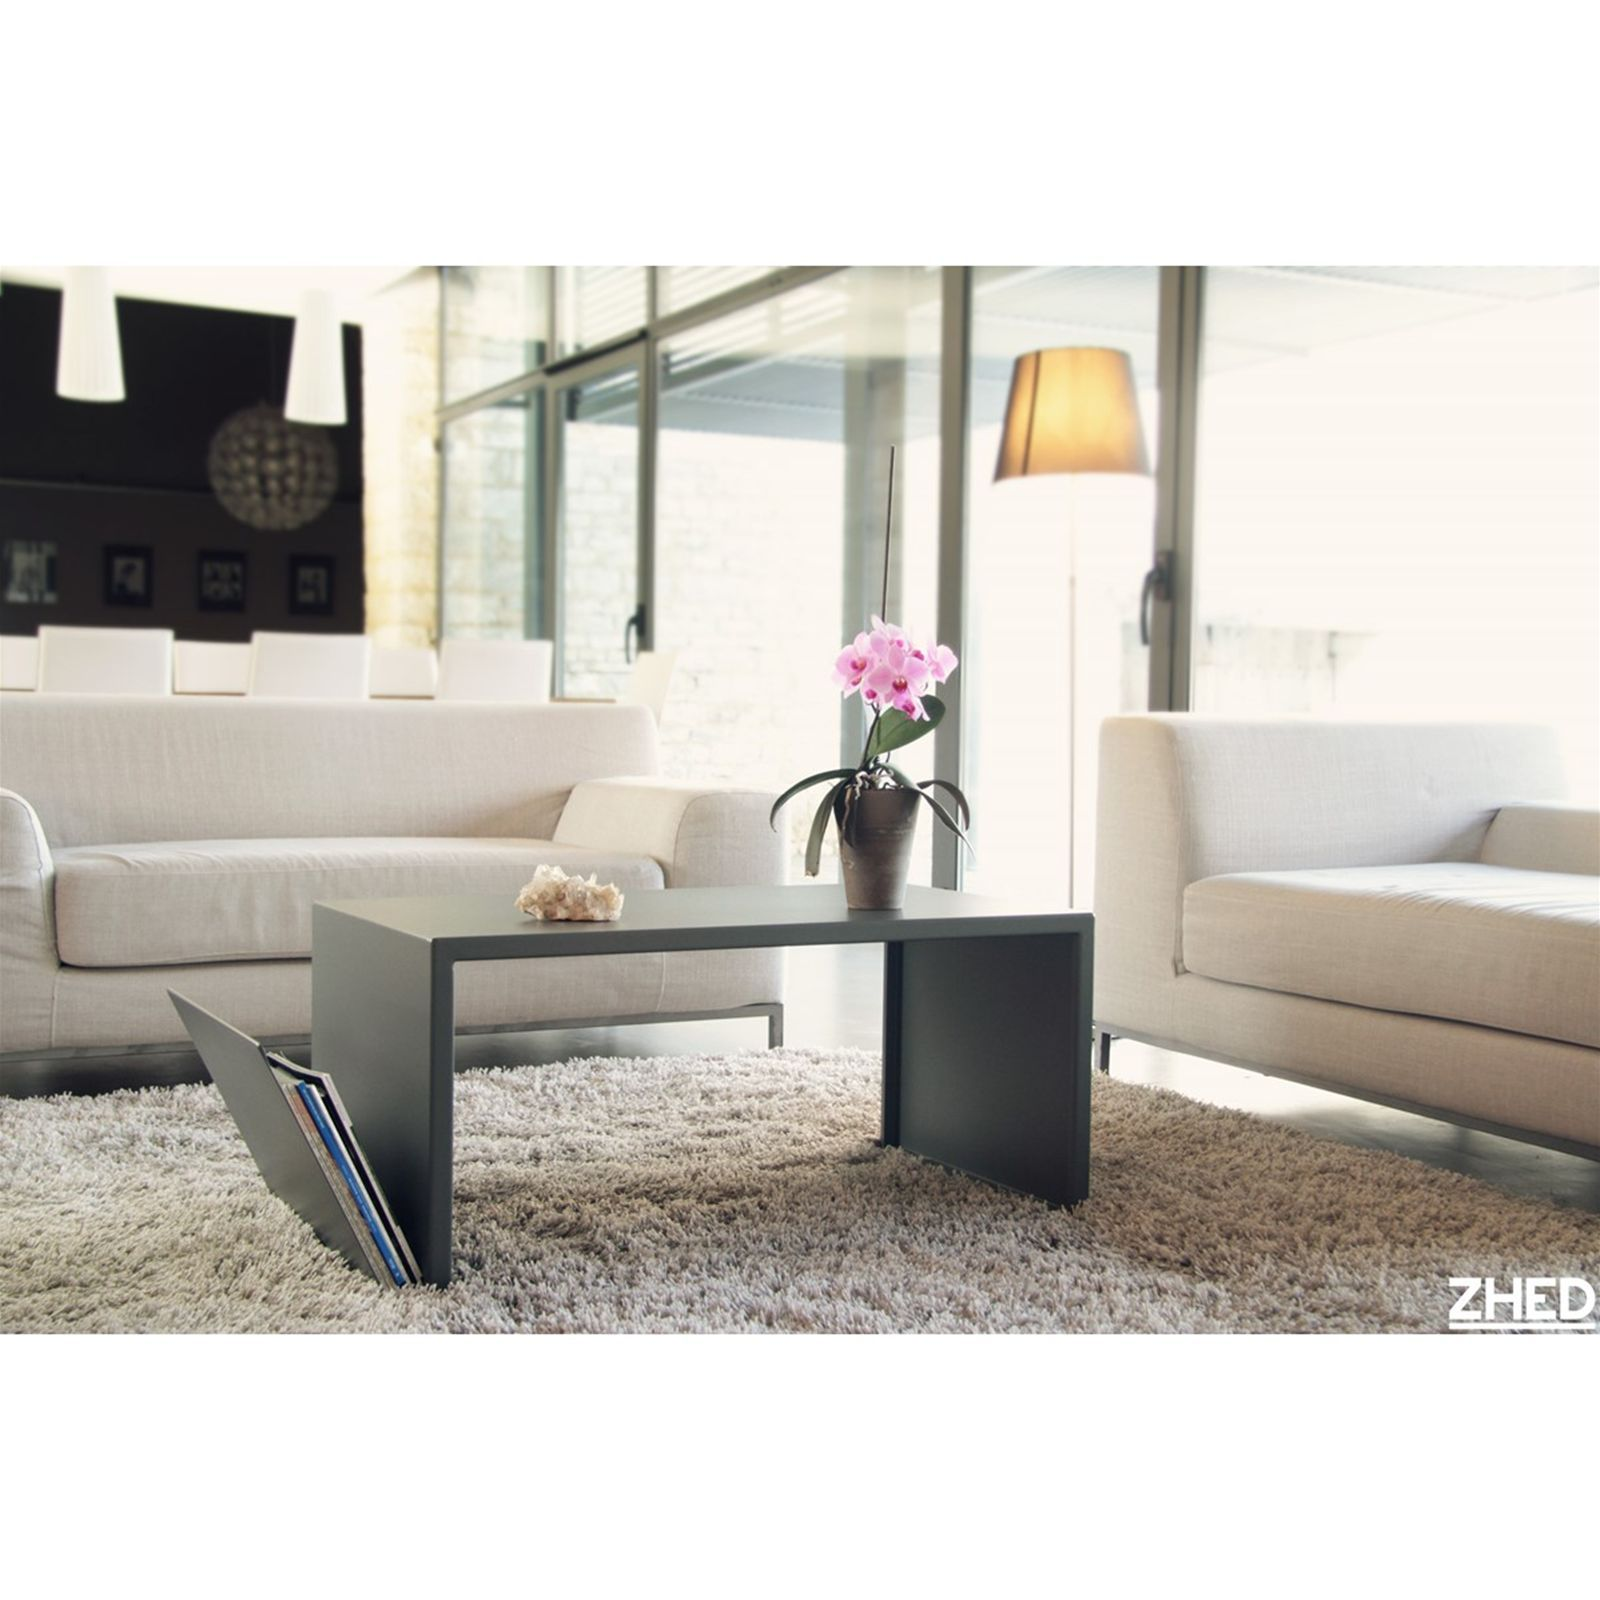 Zhed Spirix Table Basse Blanc Casse Brandalley